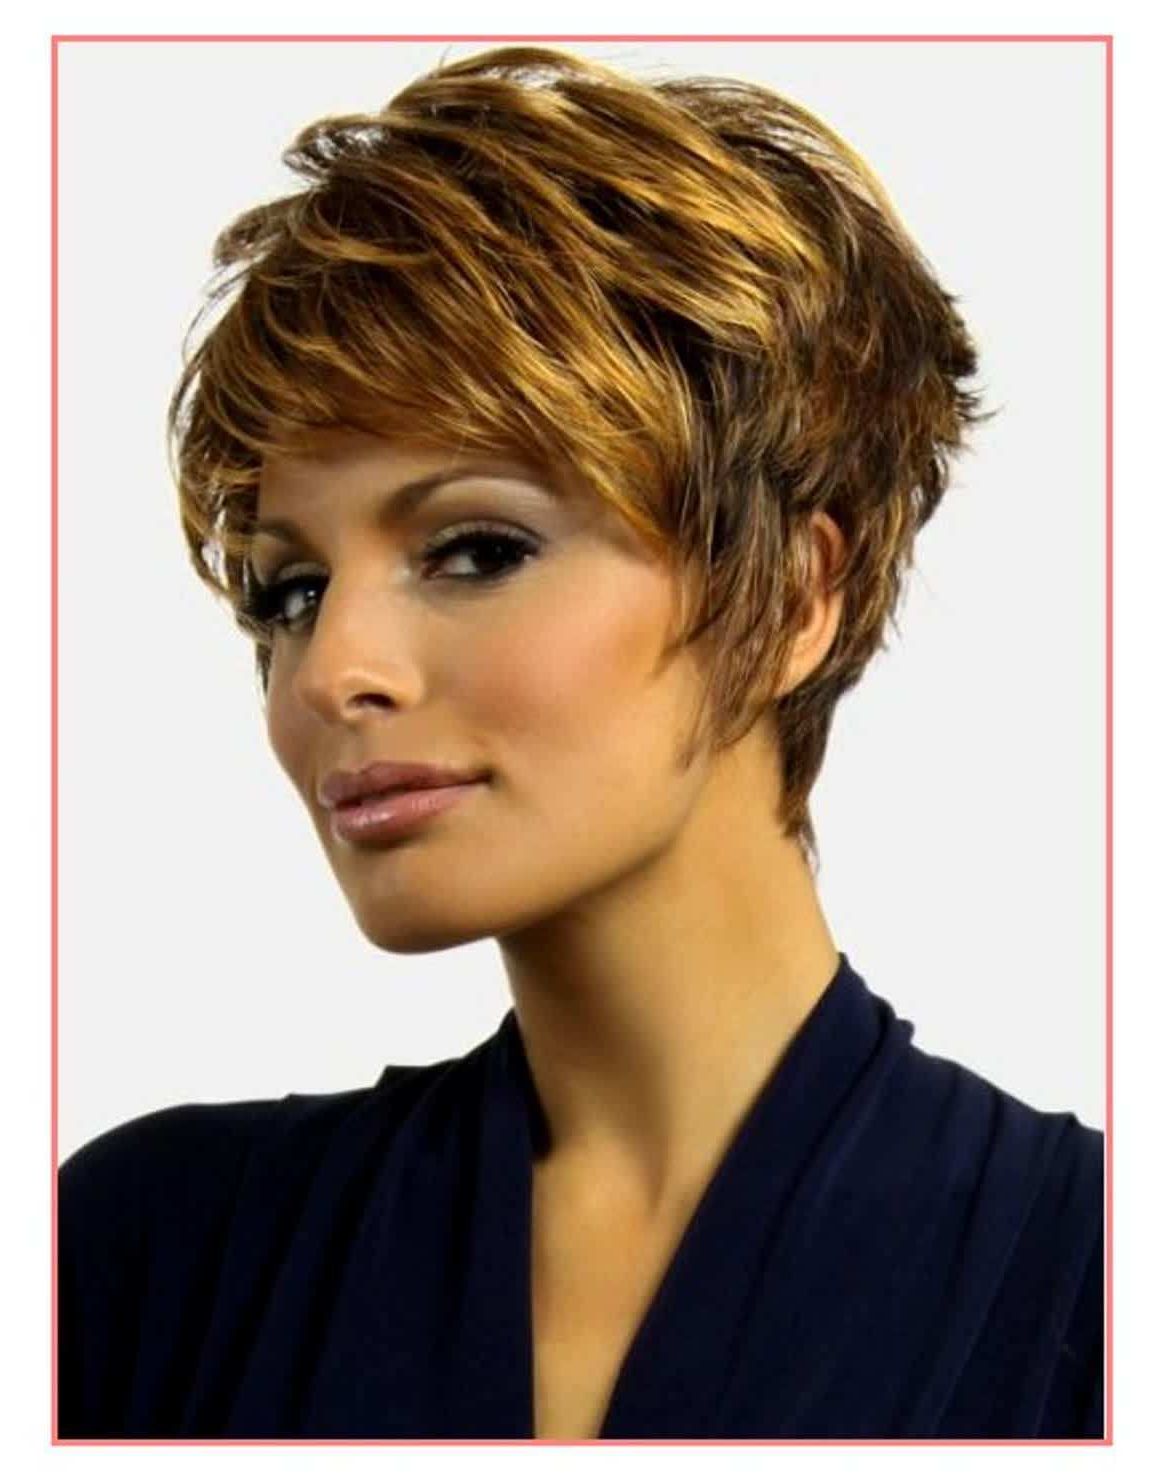 Hairstyles For Thick Short Hair Luxury Short Hairstyles For Thick Within Oval Face Short Hair (View 23 of 25)